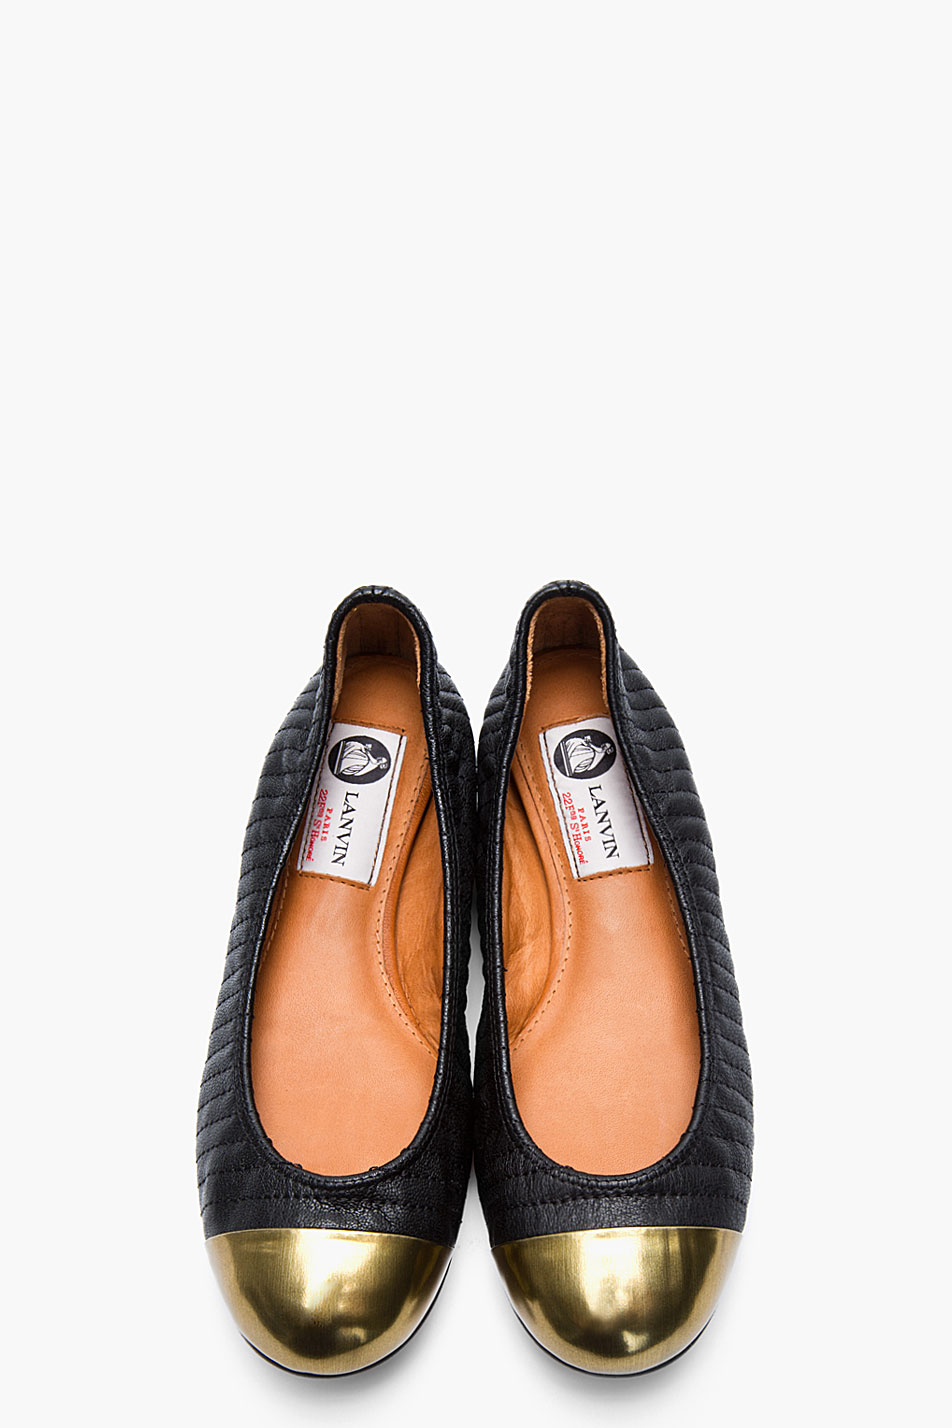 discount real Lanvin Metallic Cap-Toe Flats free shipping pay with paypal free shipping low price fee shipping low shipping fee online FSjdeCwmnz